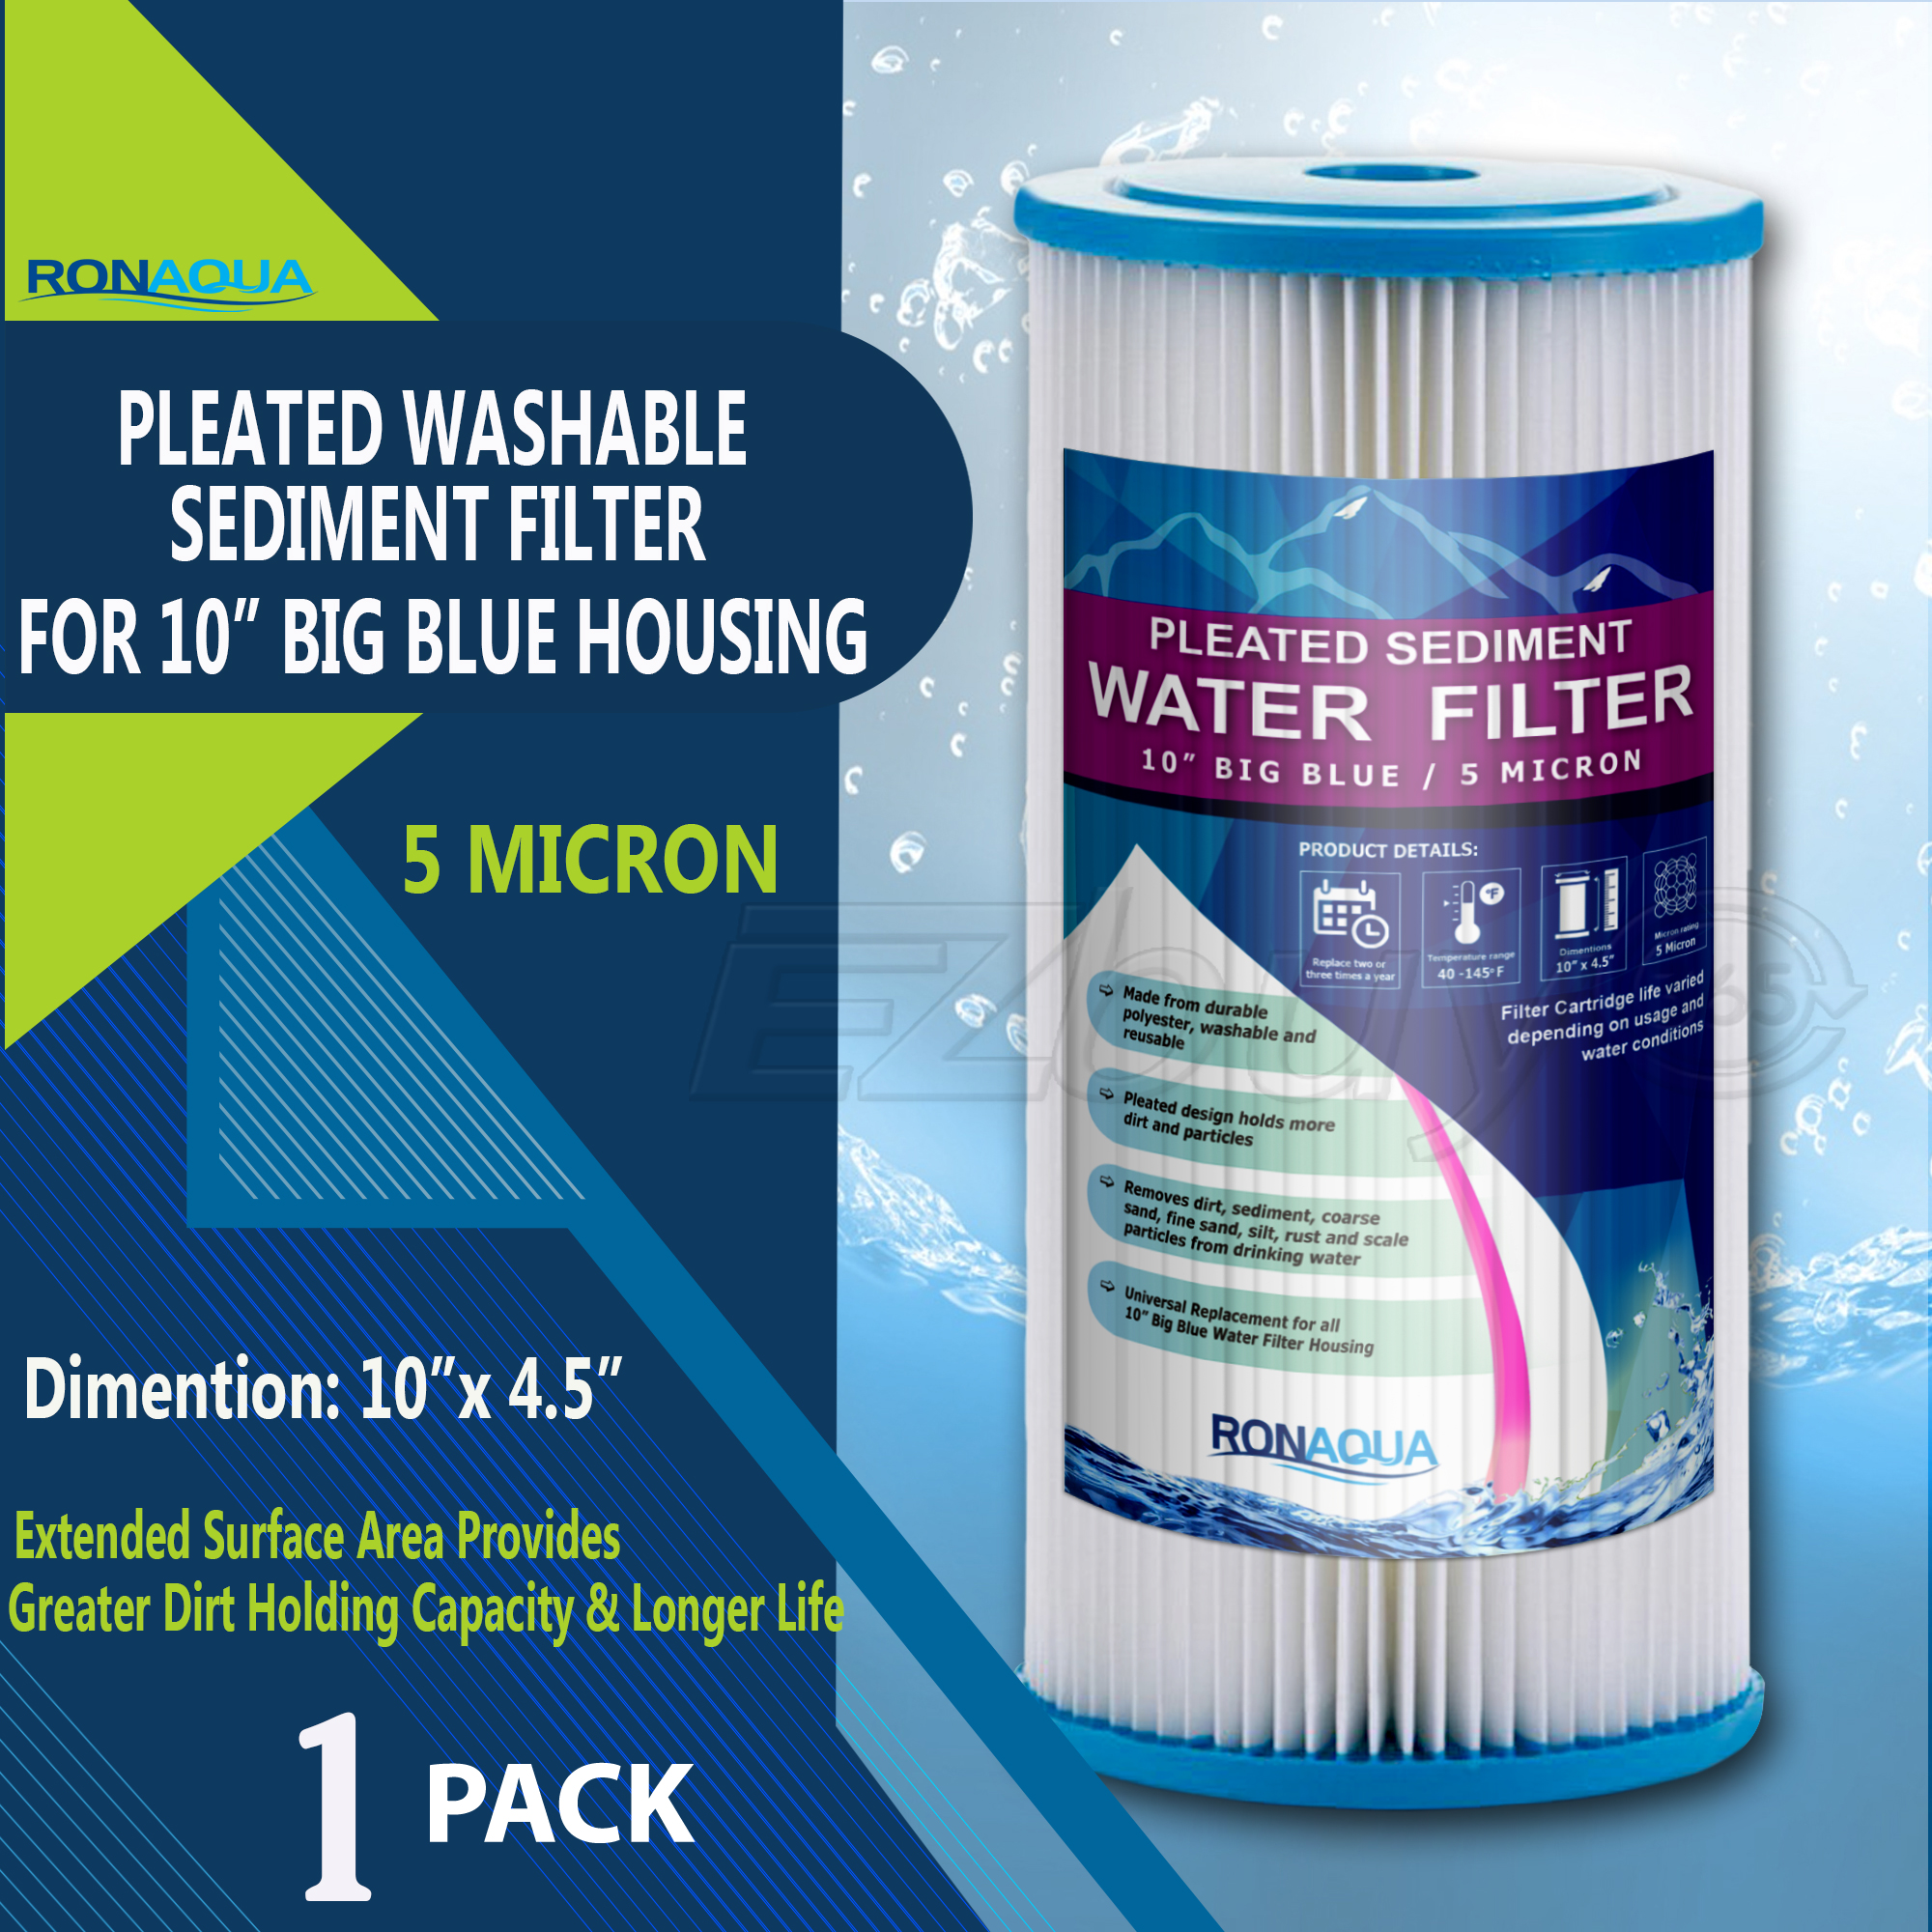 "Big Blue Pleated Washable & Reusable Sediment Filter 5 Micron Amplified Surface Area, Removes Sand, Dirt, Silt, Rust, Extended Filter Life for 10"" Big Blue Housing, by Ronaqua"